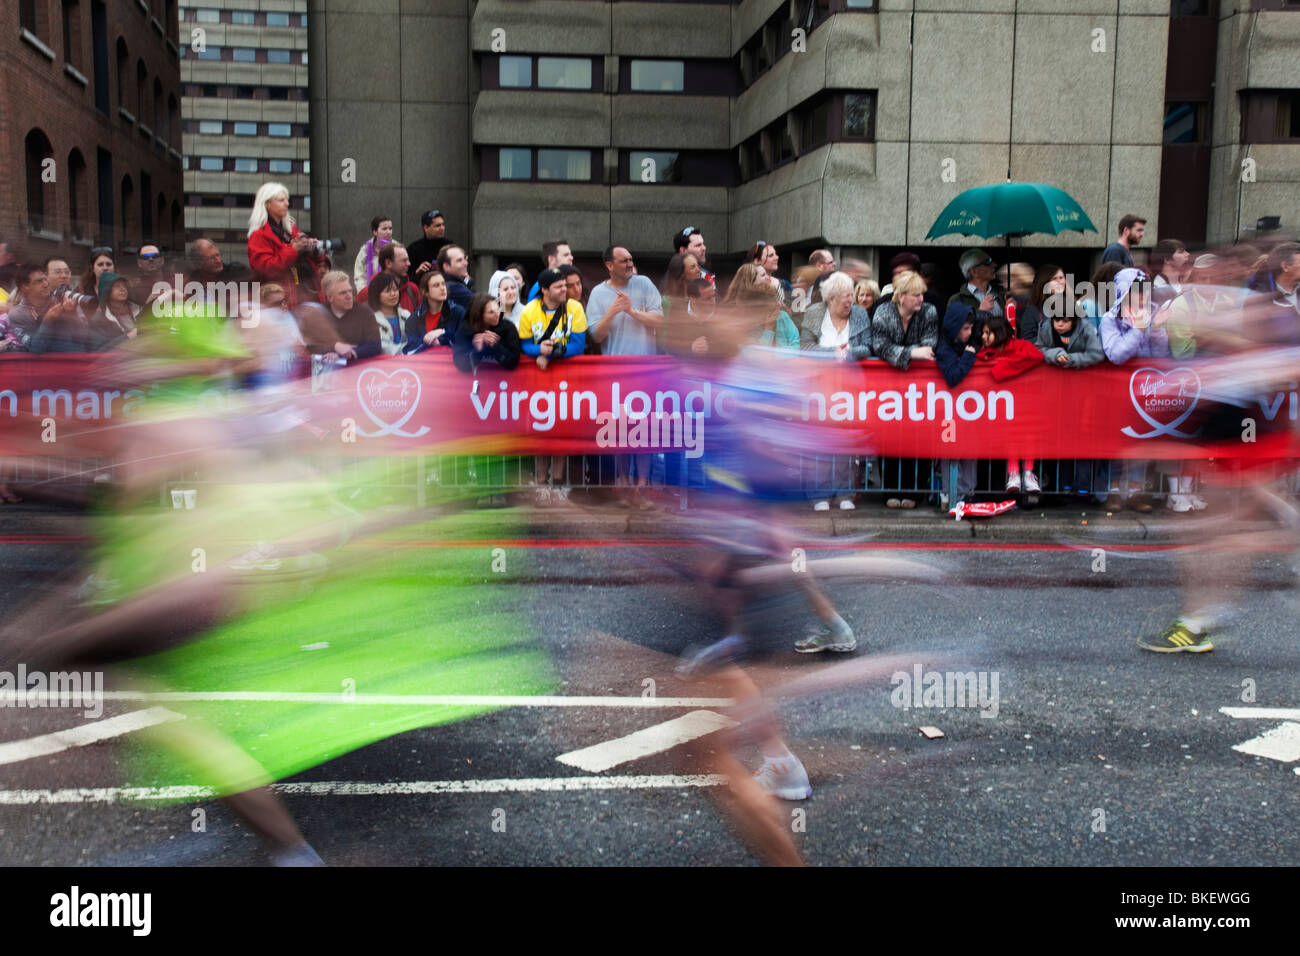 Läufer in der Virgin London-Marathon 2010. Stockbild